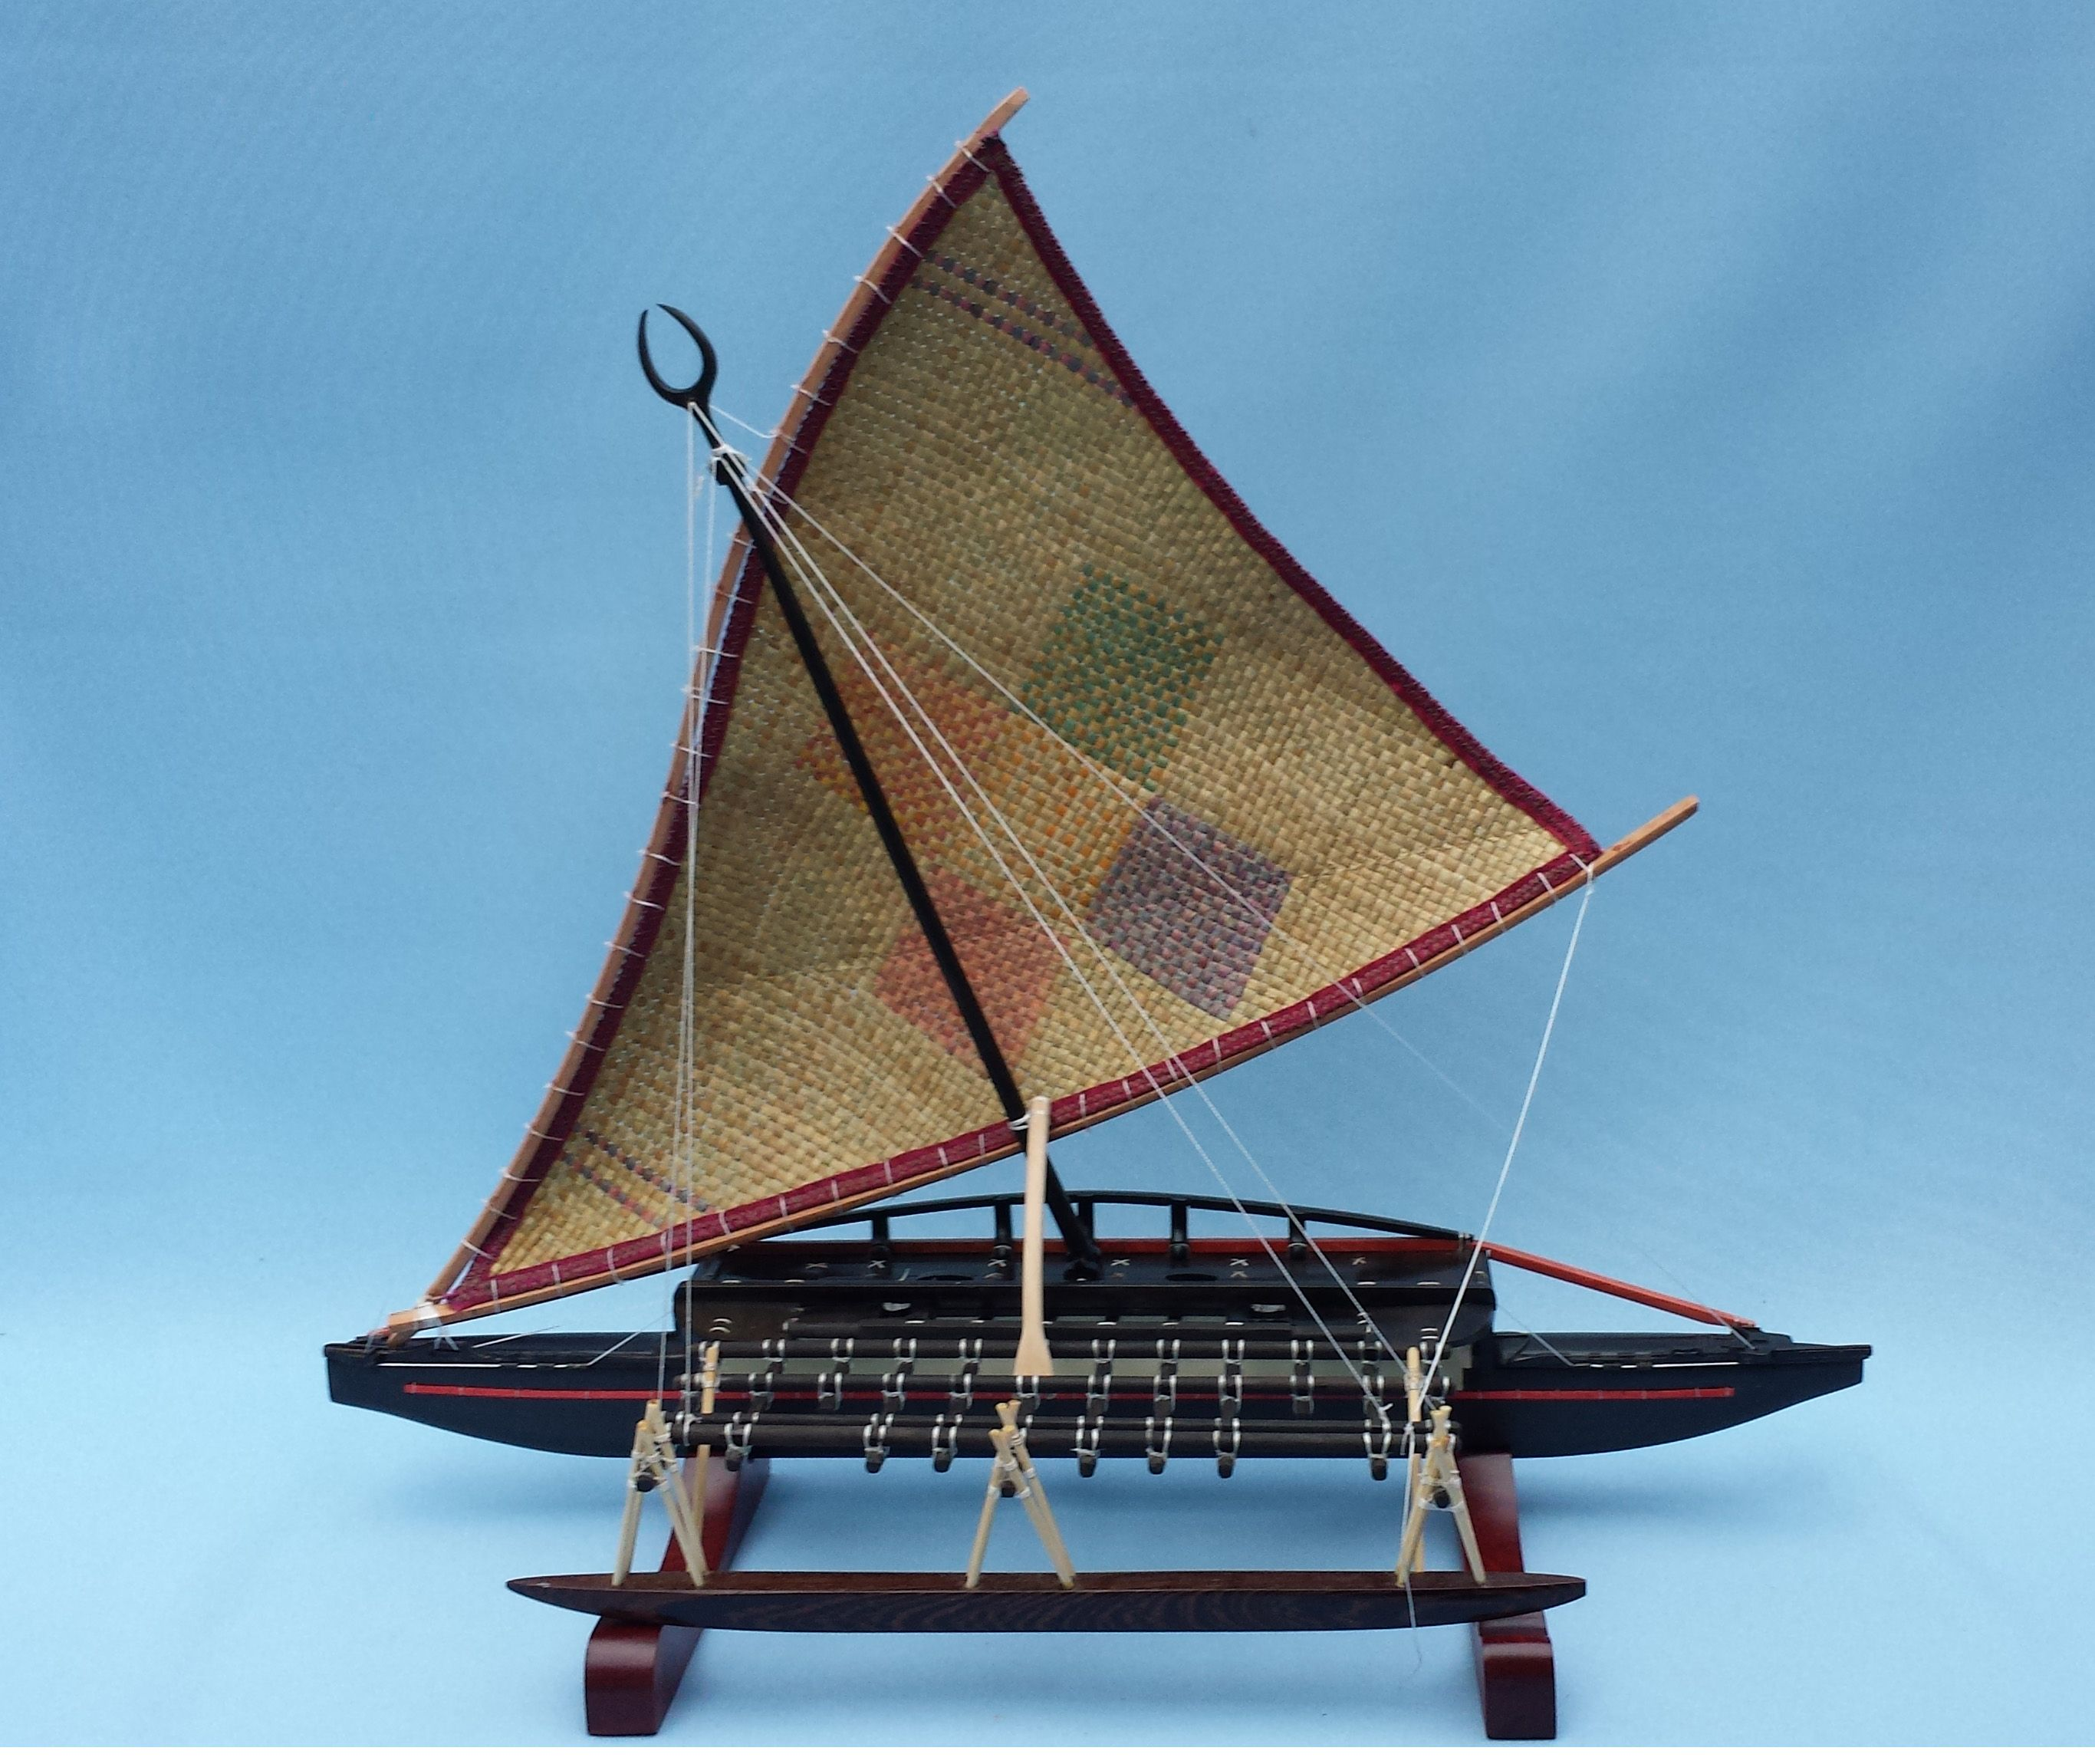 Side View Of The Fiji Canoe Camakau Also Called Thamakau With Its Beautiful Matted Sail